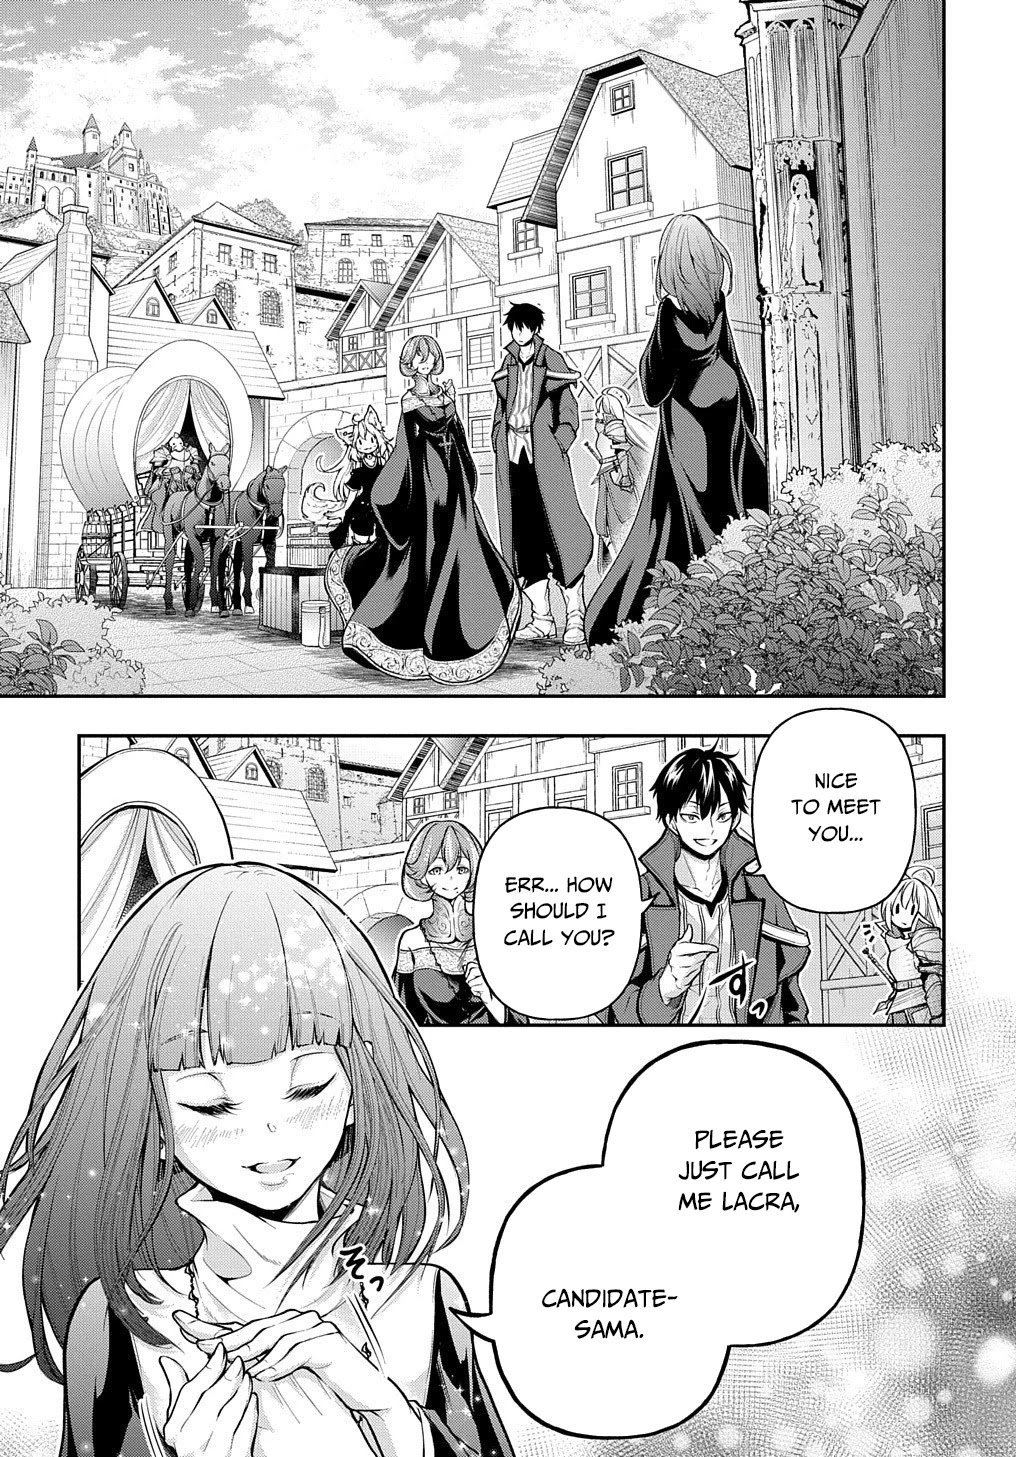 Manga It's Sudden, but I came to Another World! But I hope to live Safely - Chapter 16 Page 2